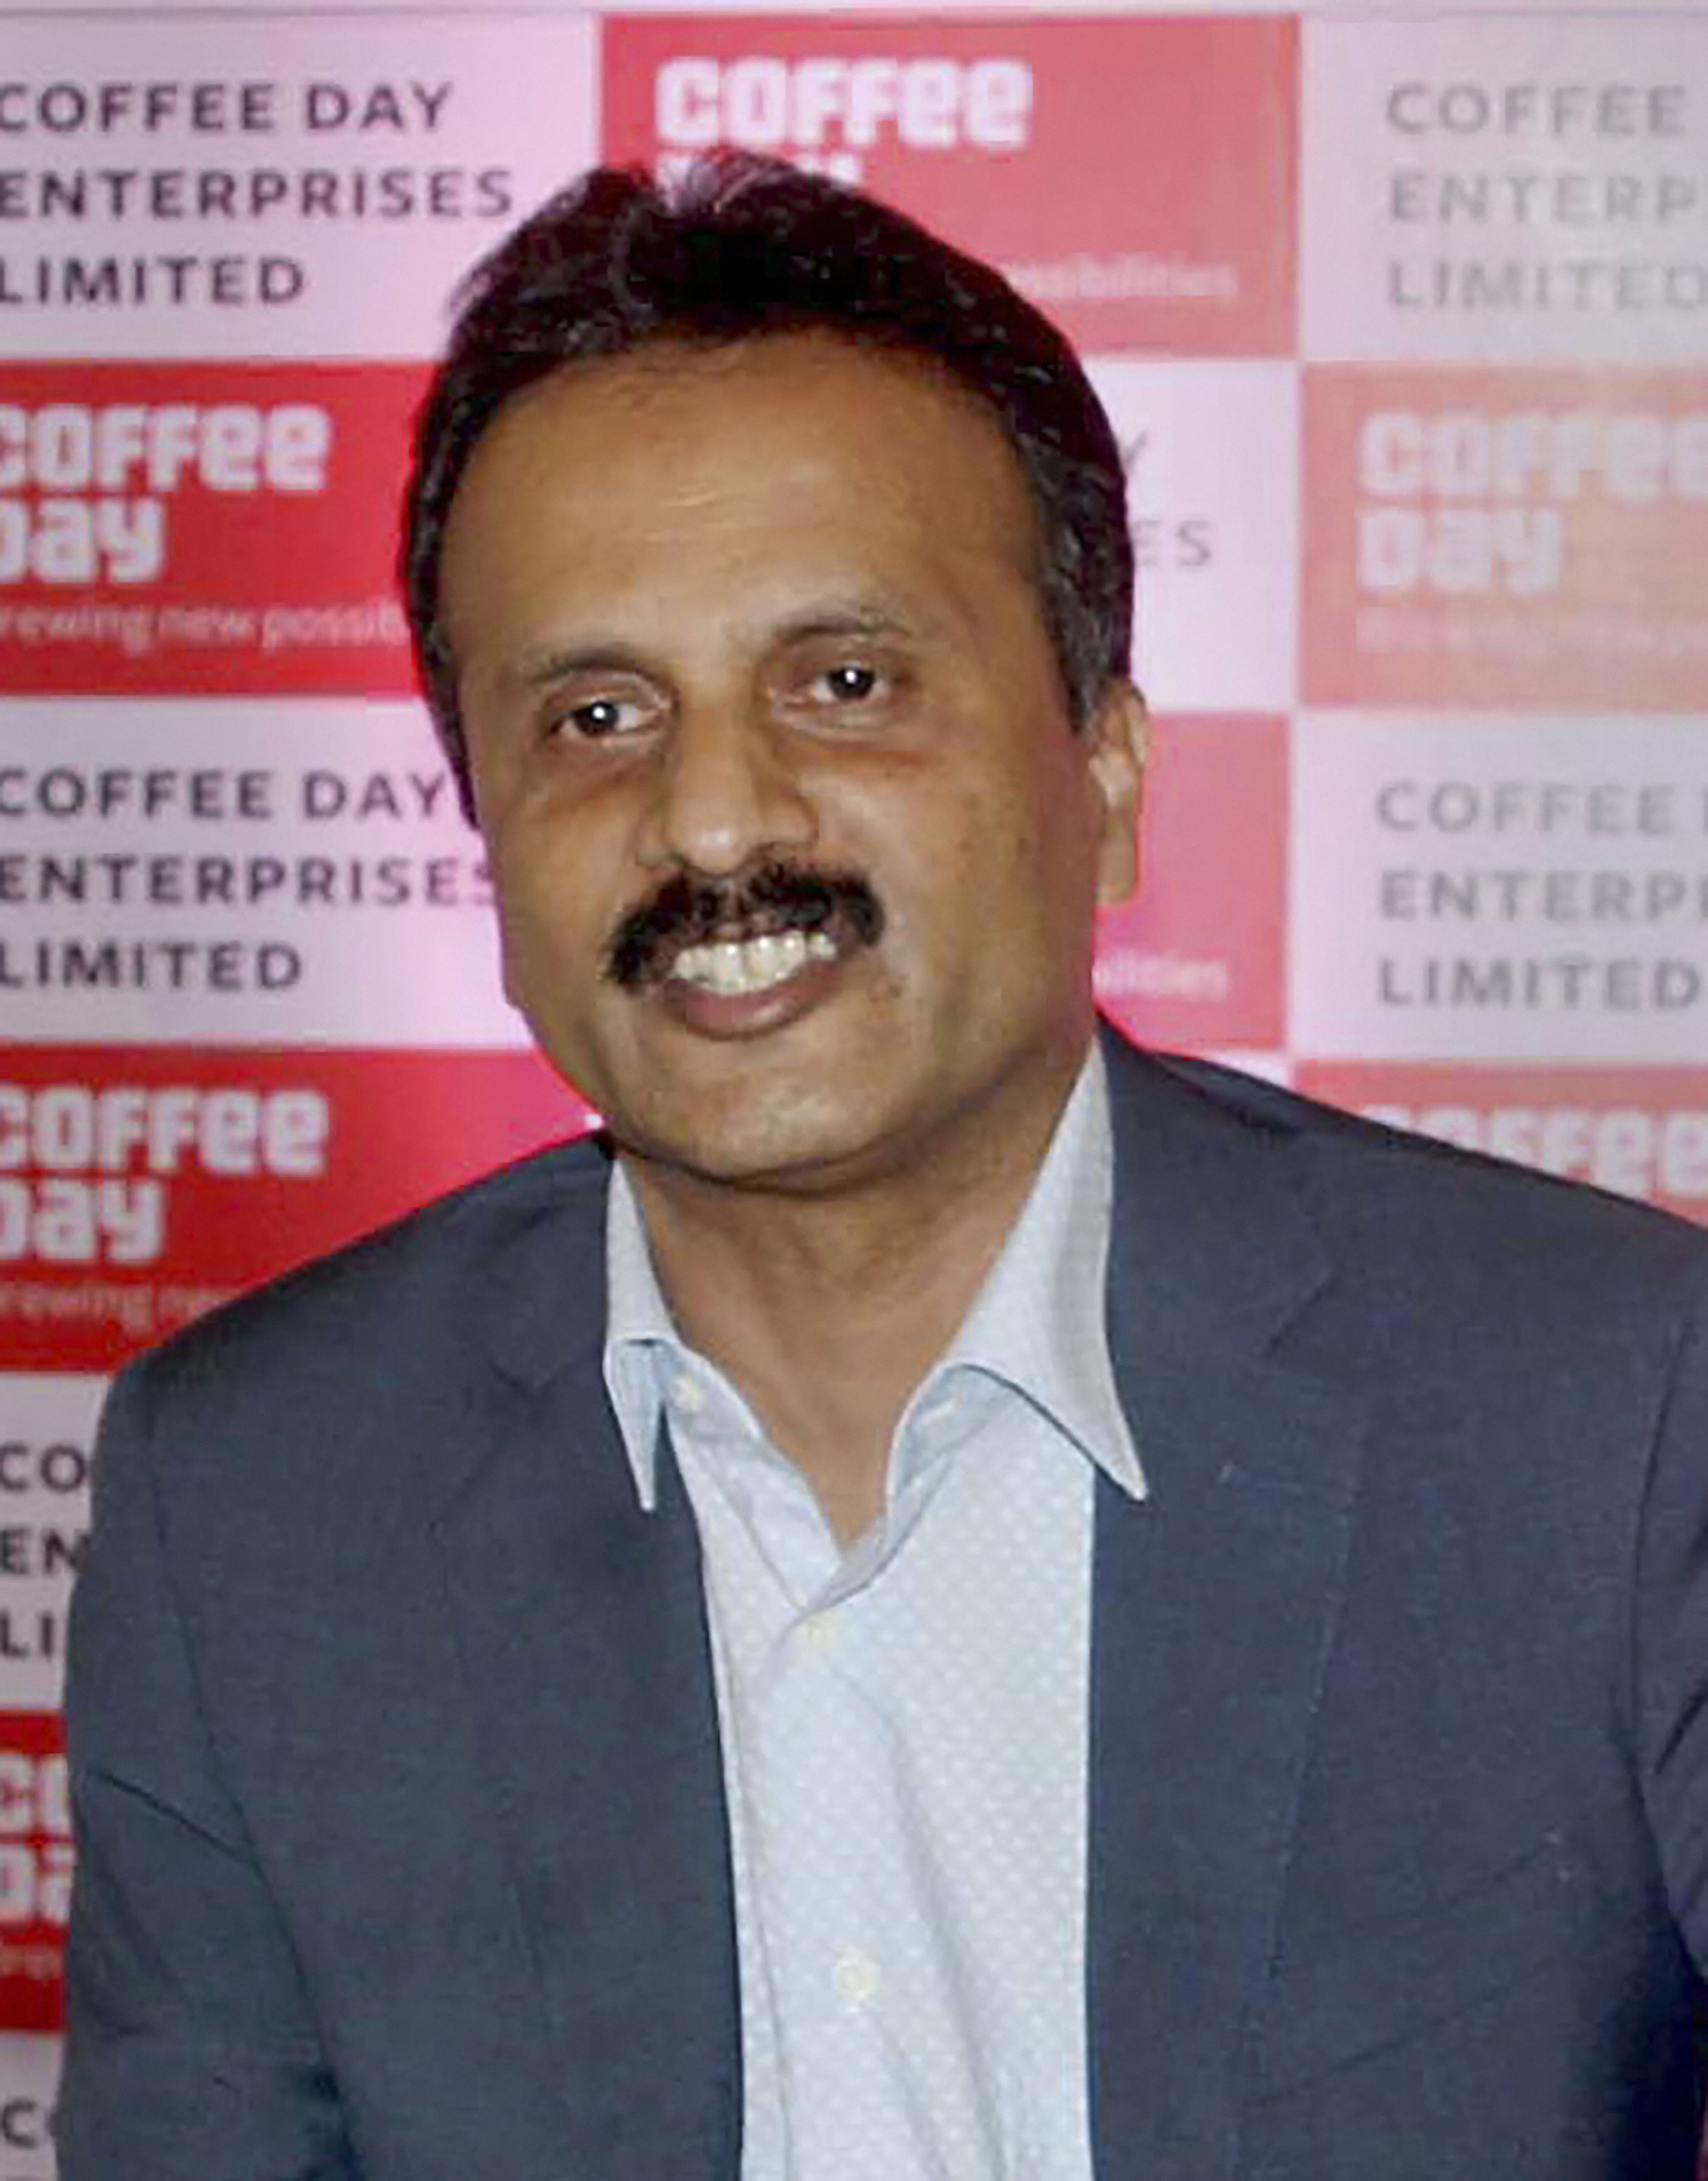 In this file photo dated October 13, 2015, Cafe Coffee Day founder V G Siddhartha addresses a news conference in Bengaluru.